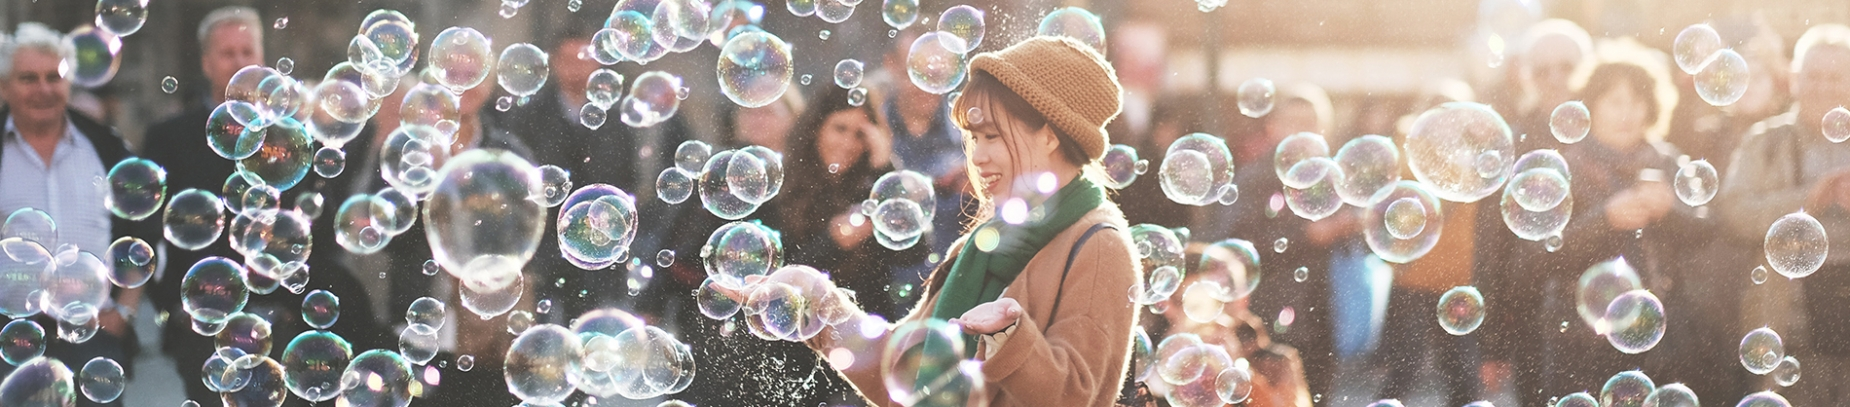 A girl stood in a crowd of people surrounded by bubbles